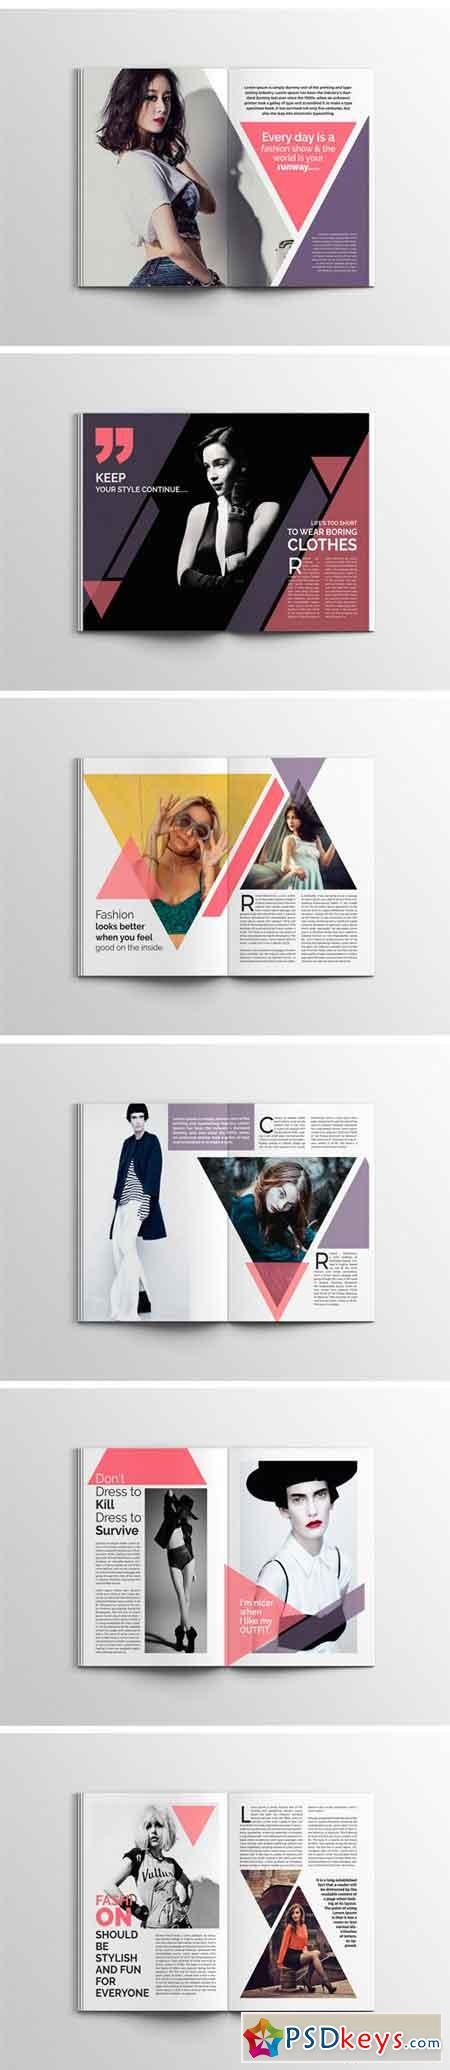 PRETTY Fashion Magazine Template 1757371